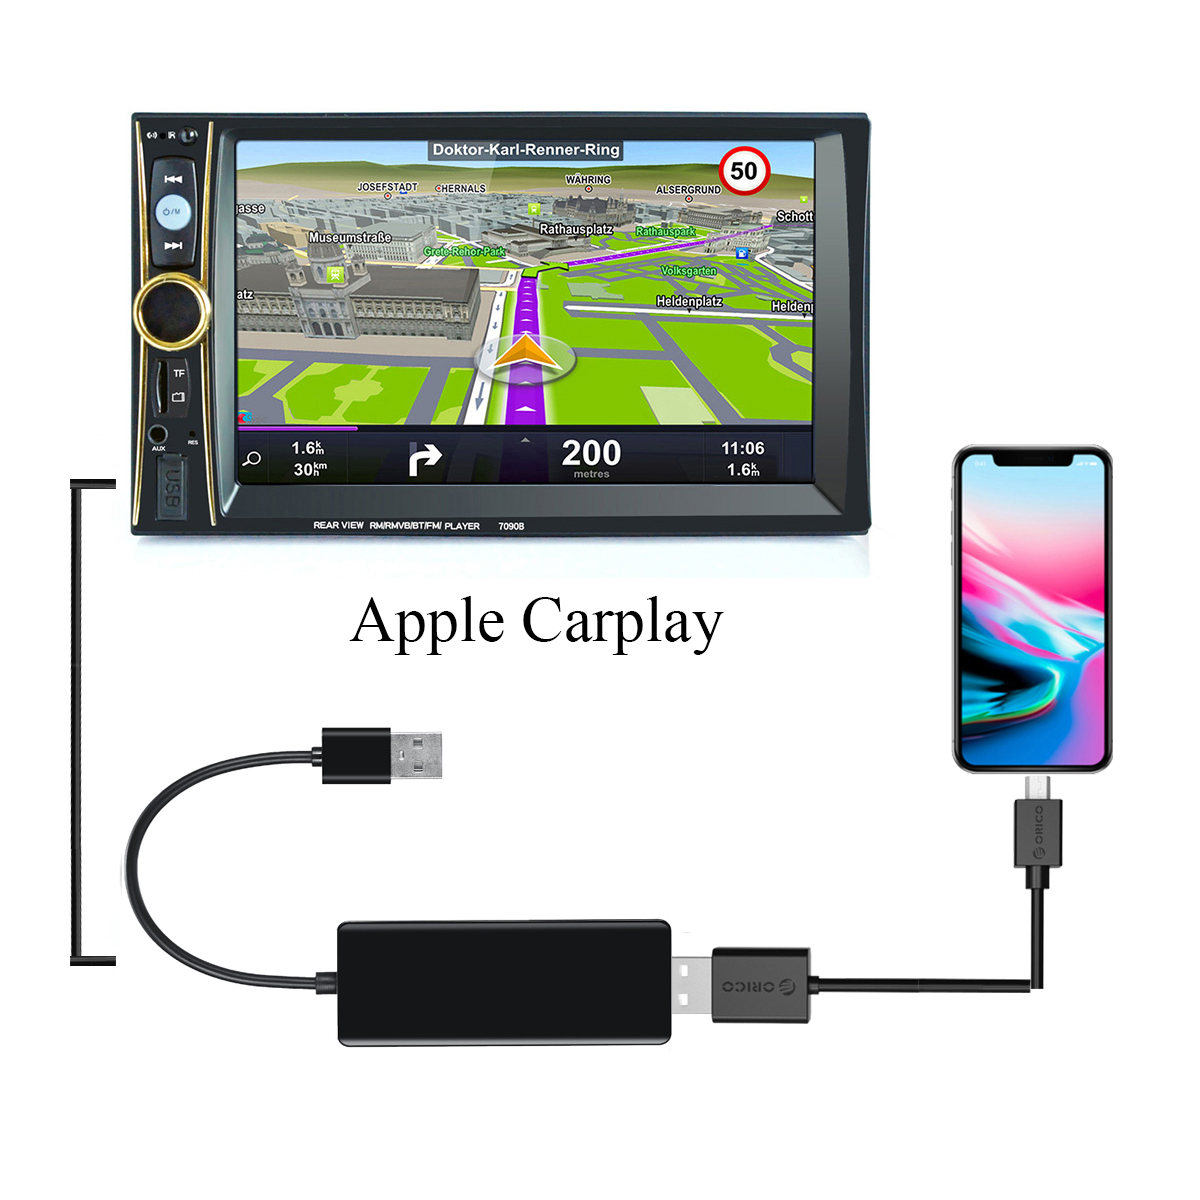 USB Android Navigation DVD Player Display Dongle Smart Link Dongle For Smart Mobile Phone